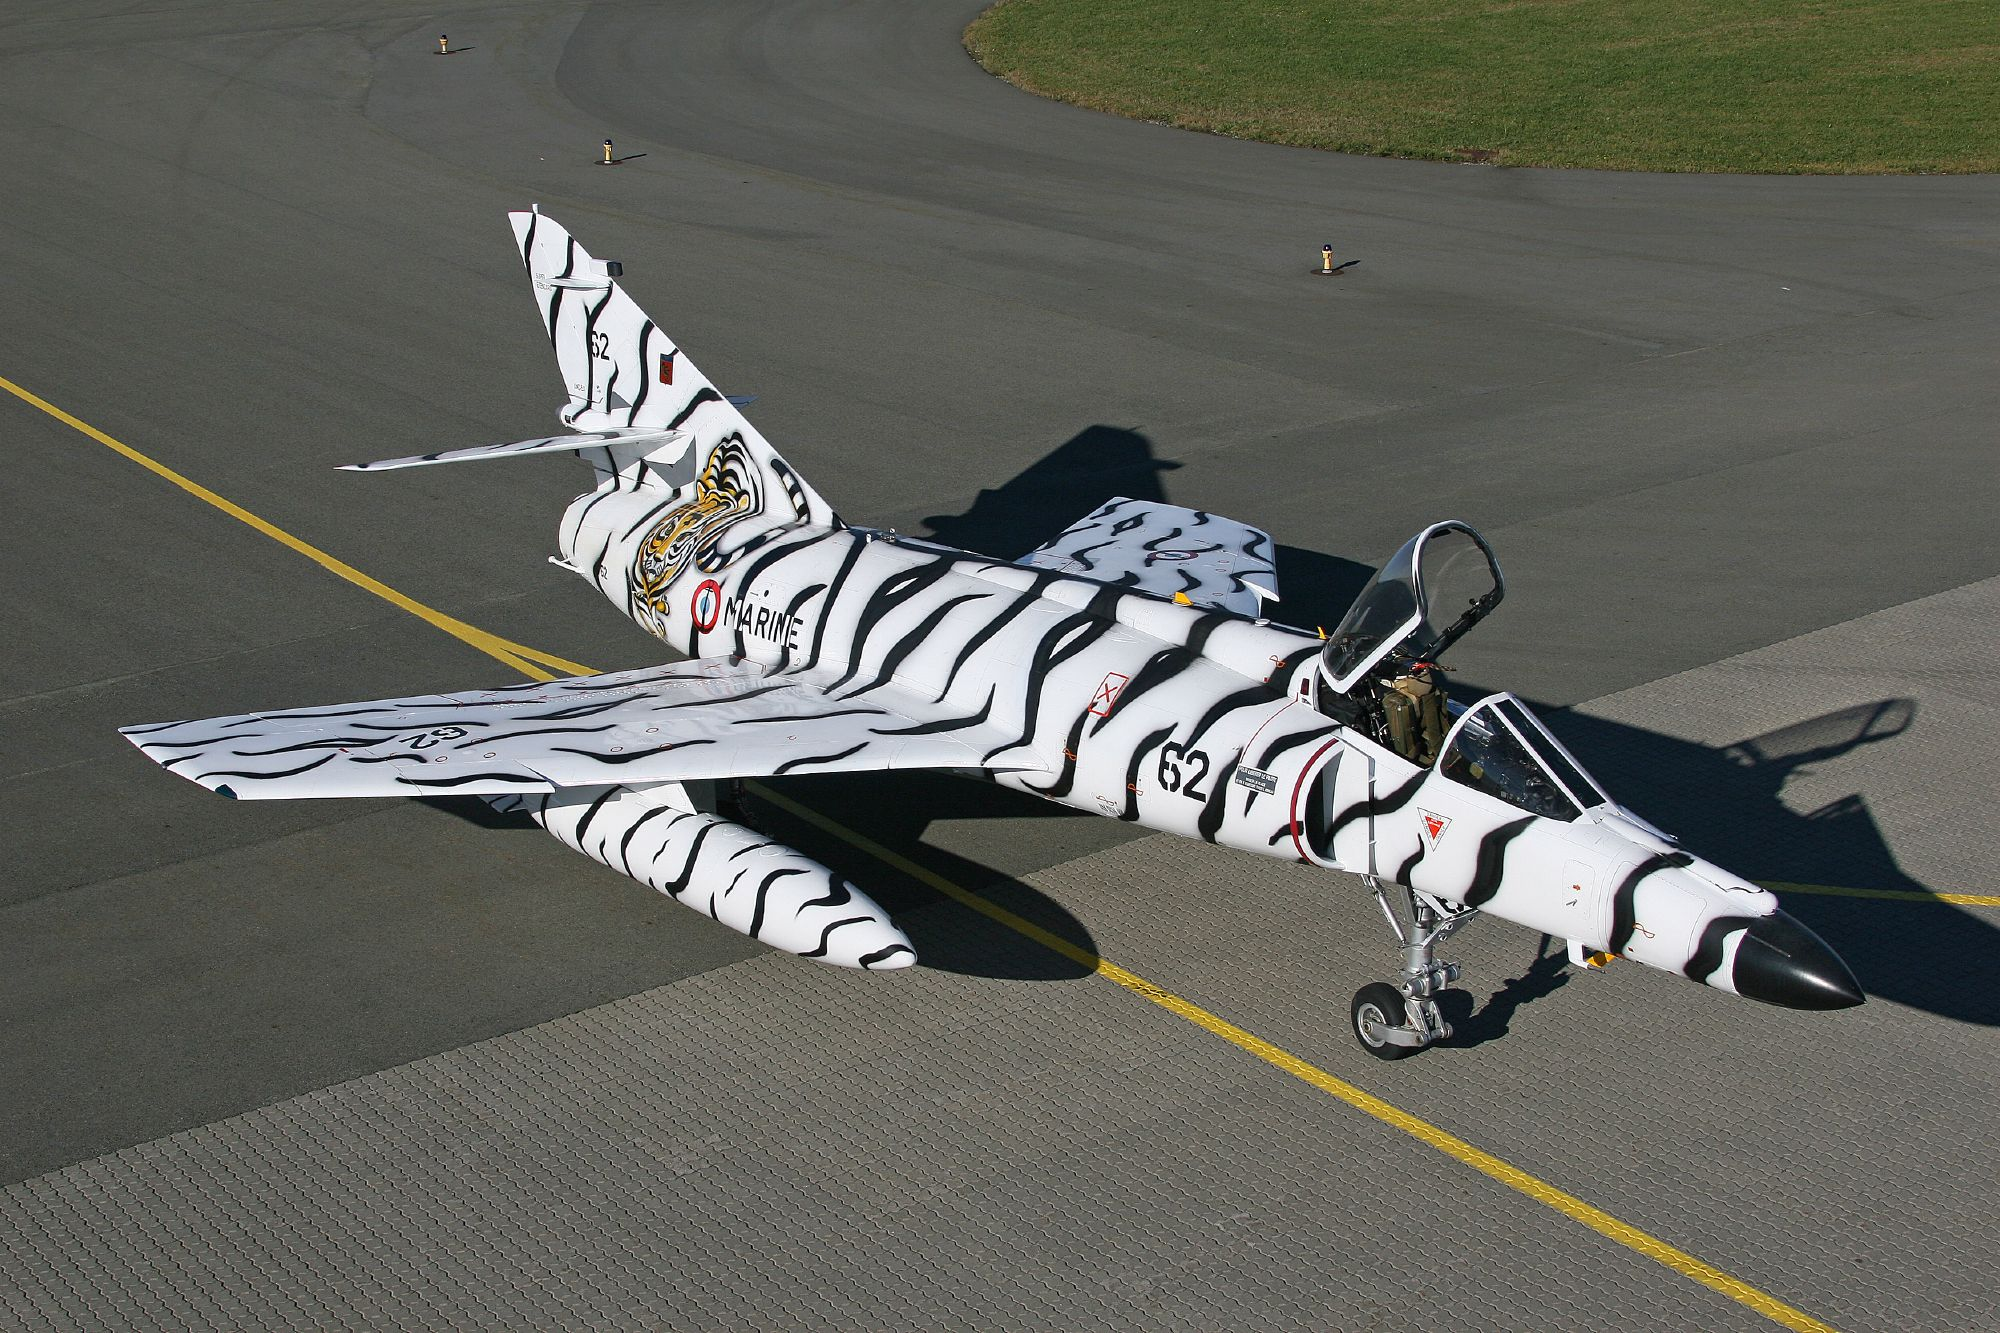 NATO Tiger Meet 2007  –  Orland, Norway